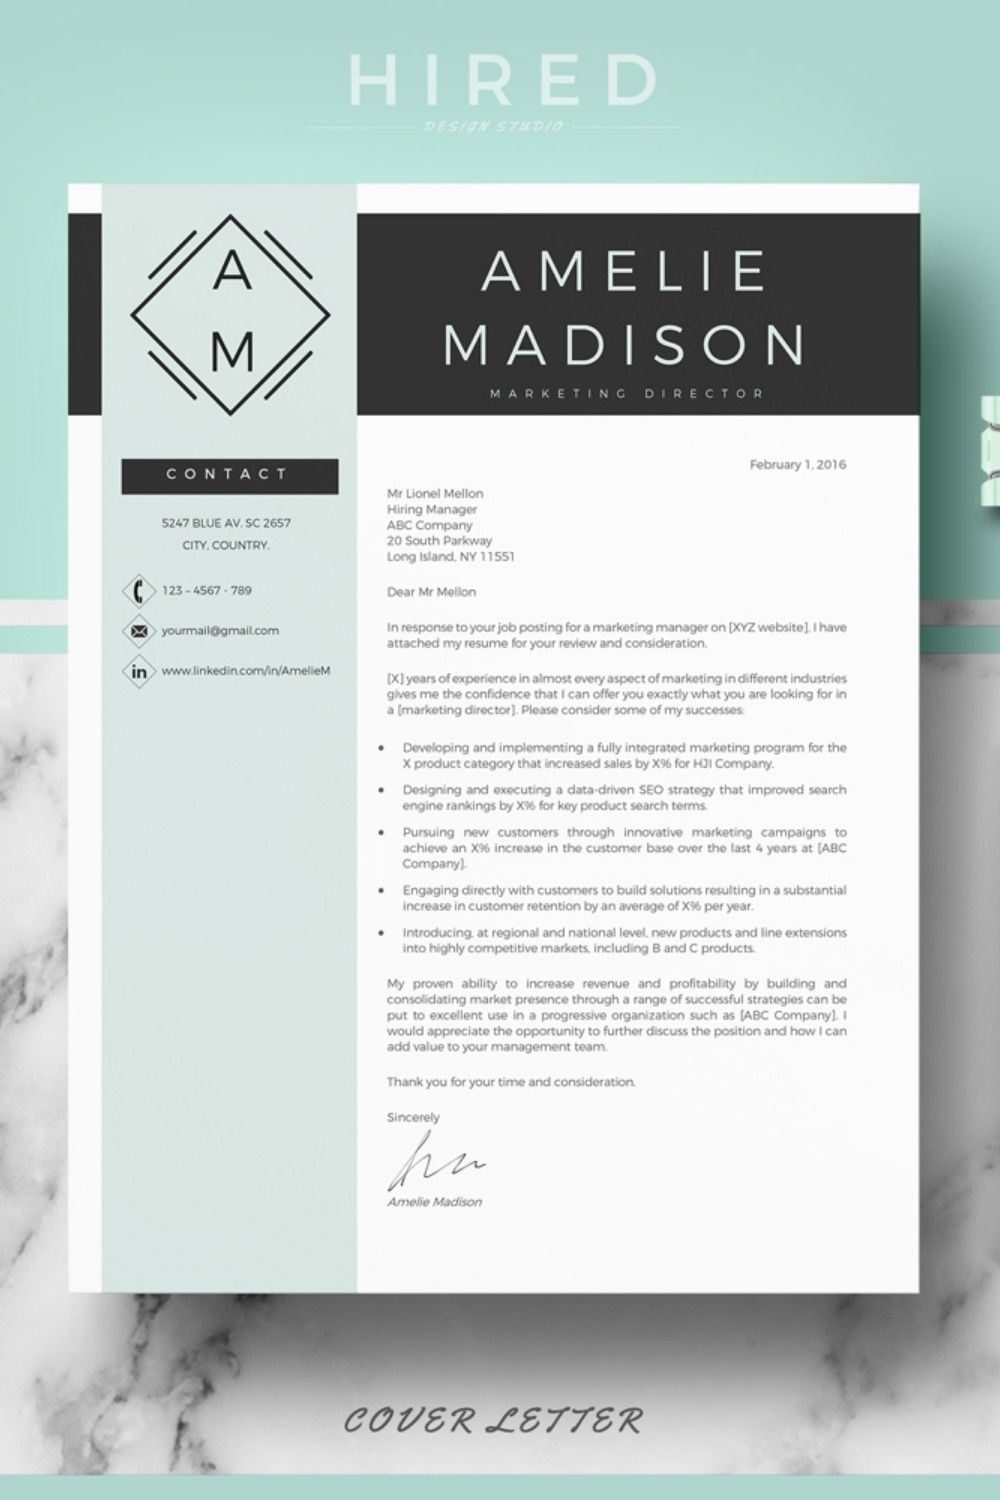 R09 Amelie Madison Creative And Professional Resume Template For Word Pages Instant Download Curriculum Resume Cover Letter References Resume Wri Reference Page For Resume Cover Letter For Resume Lettering